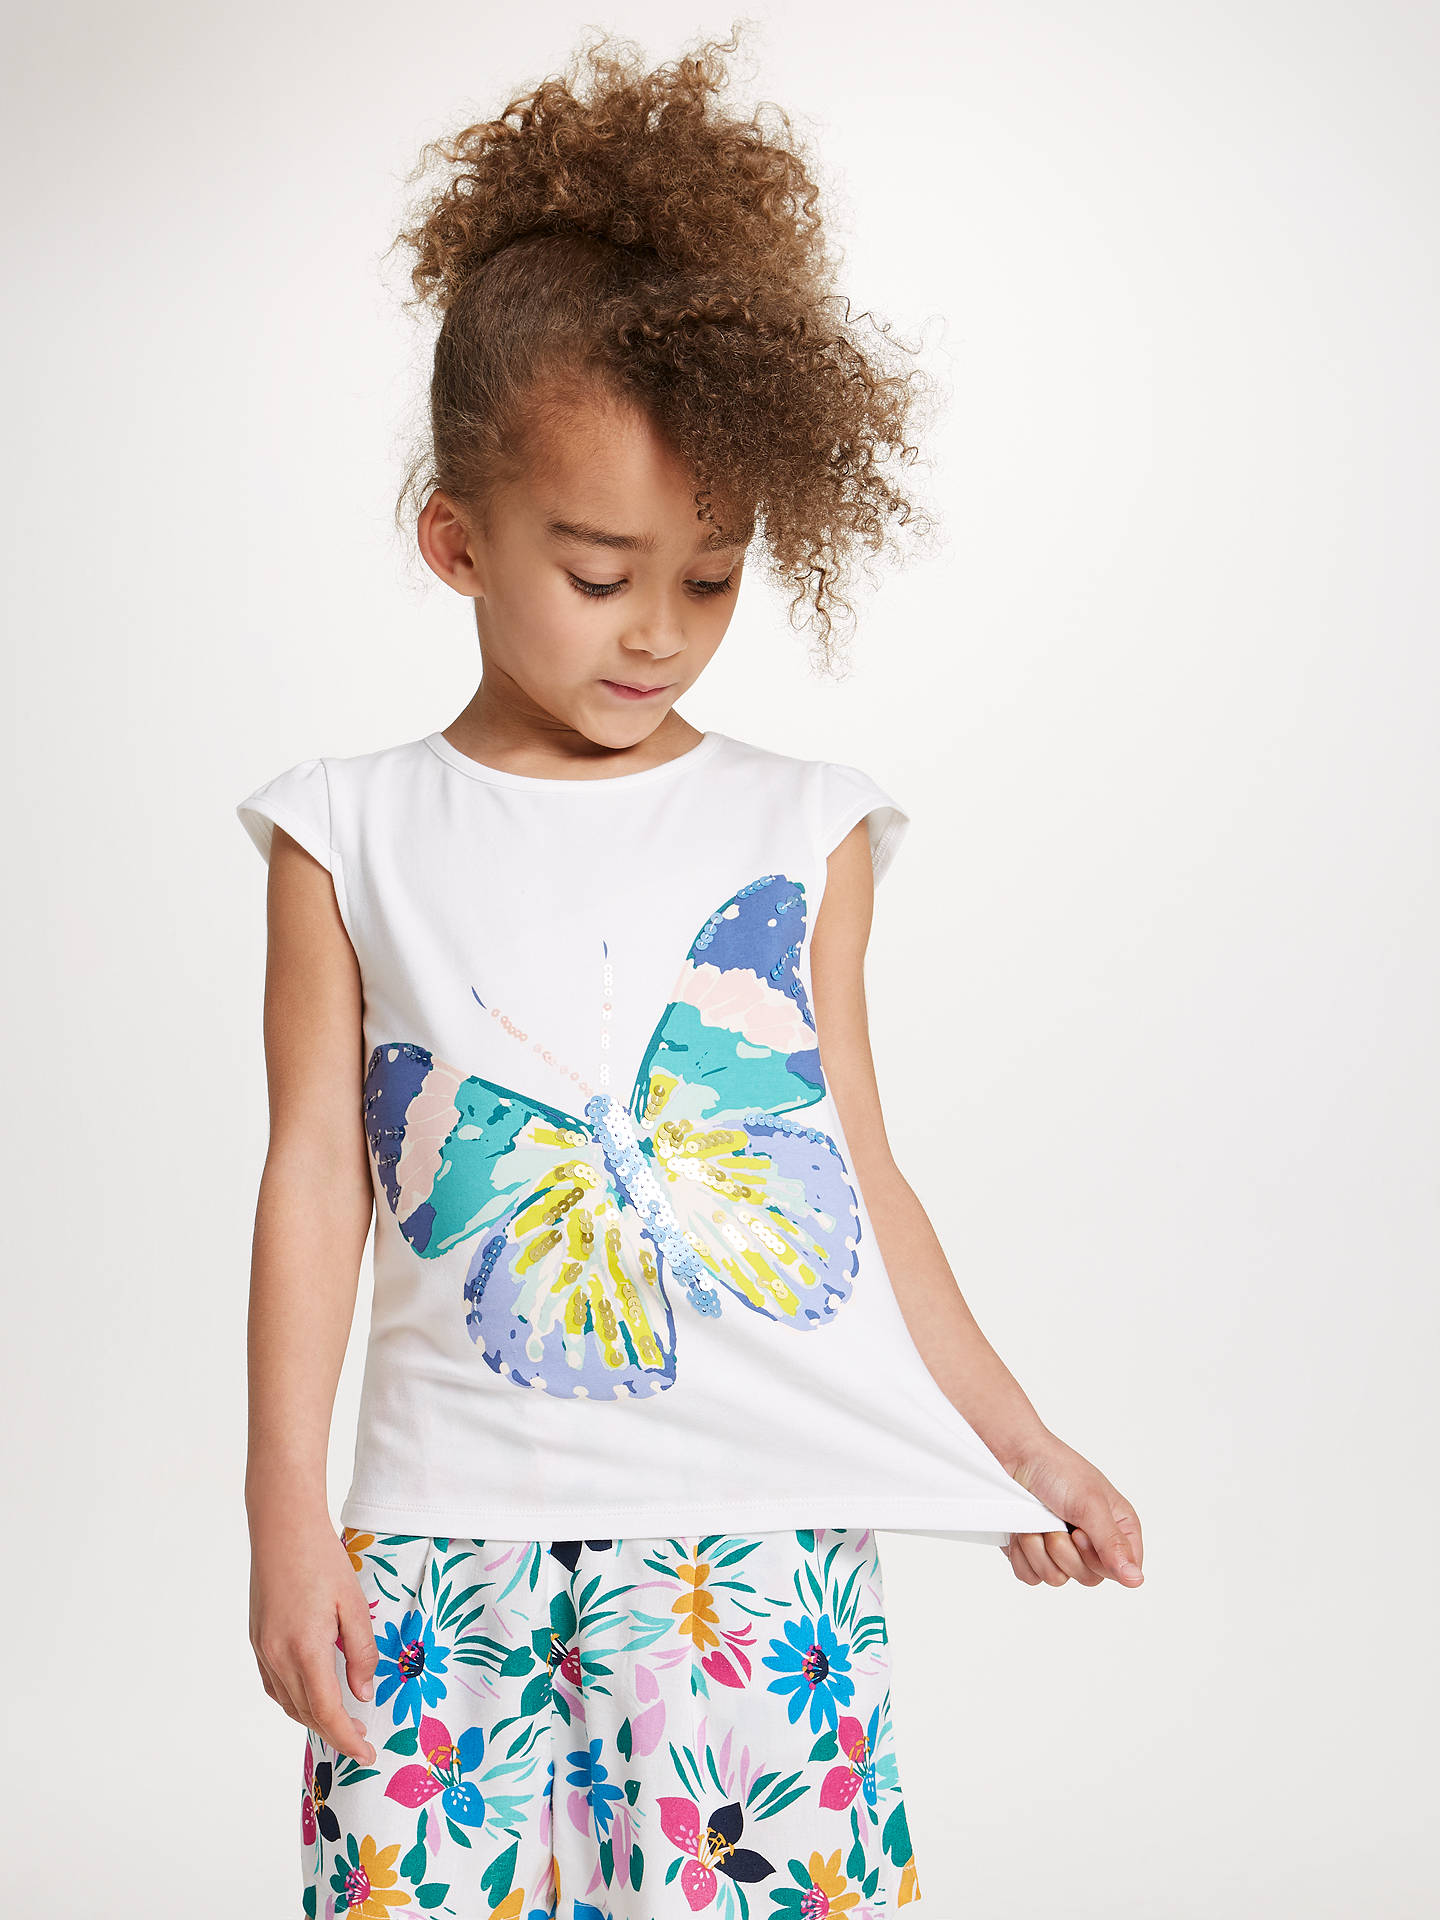 29b39636 ... Buy John Lewis Girls' Butterfly Sequin T-Shirt, Cream, 2 years Online  ...